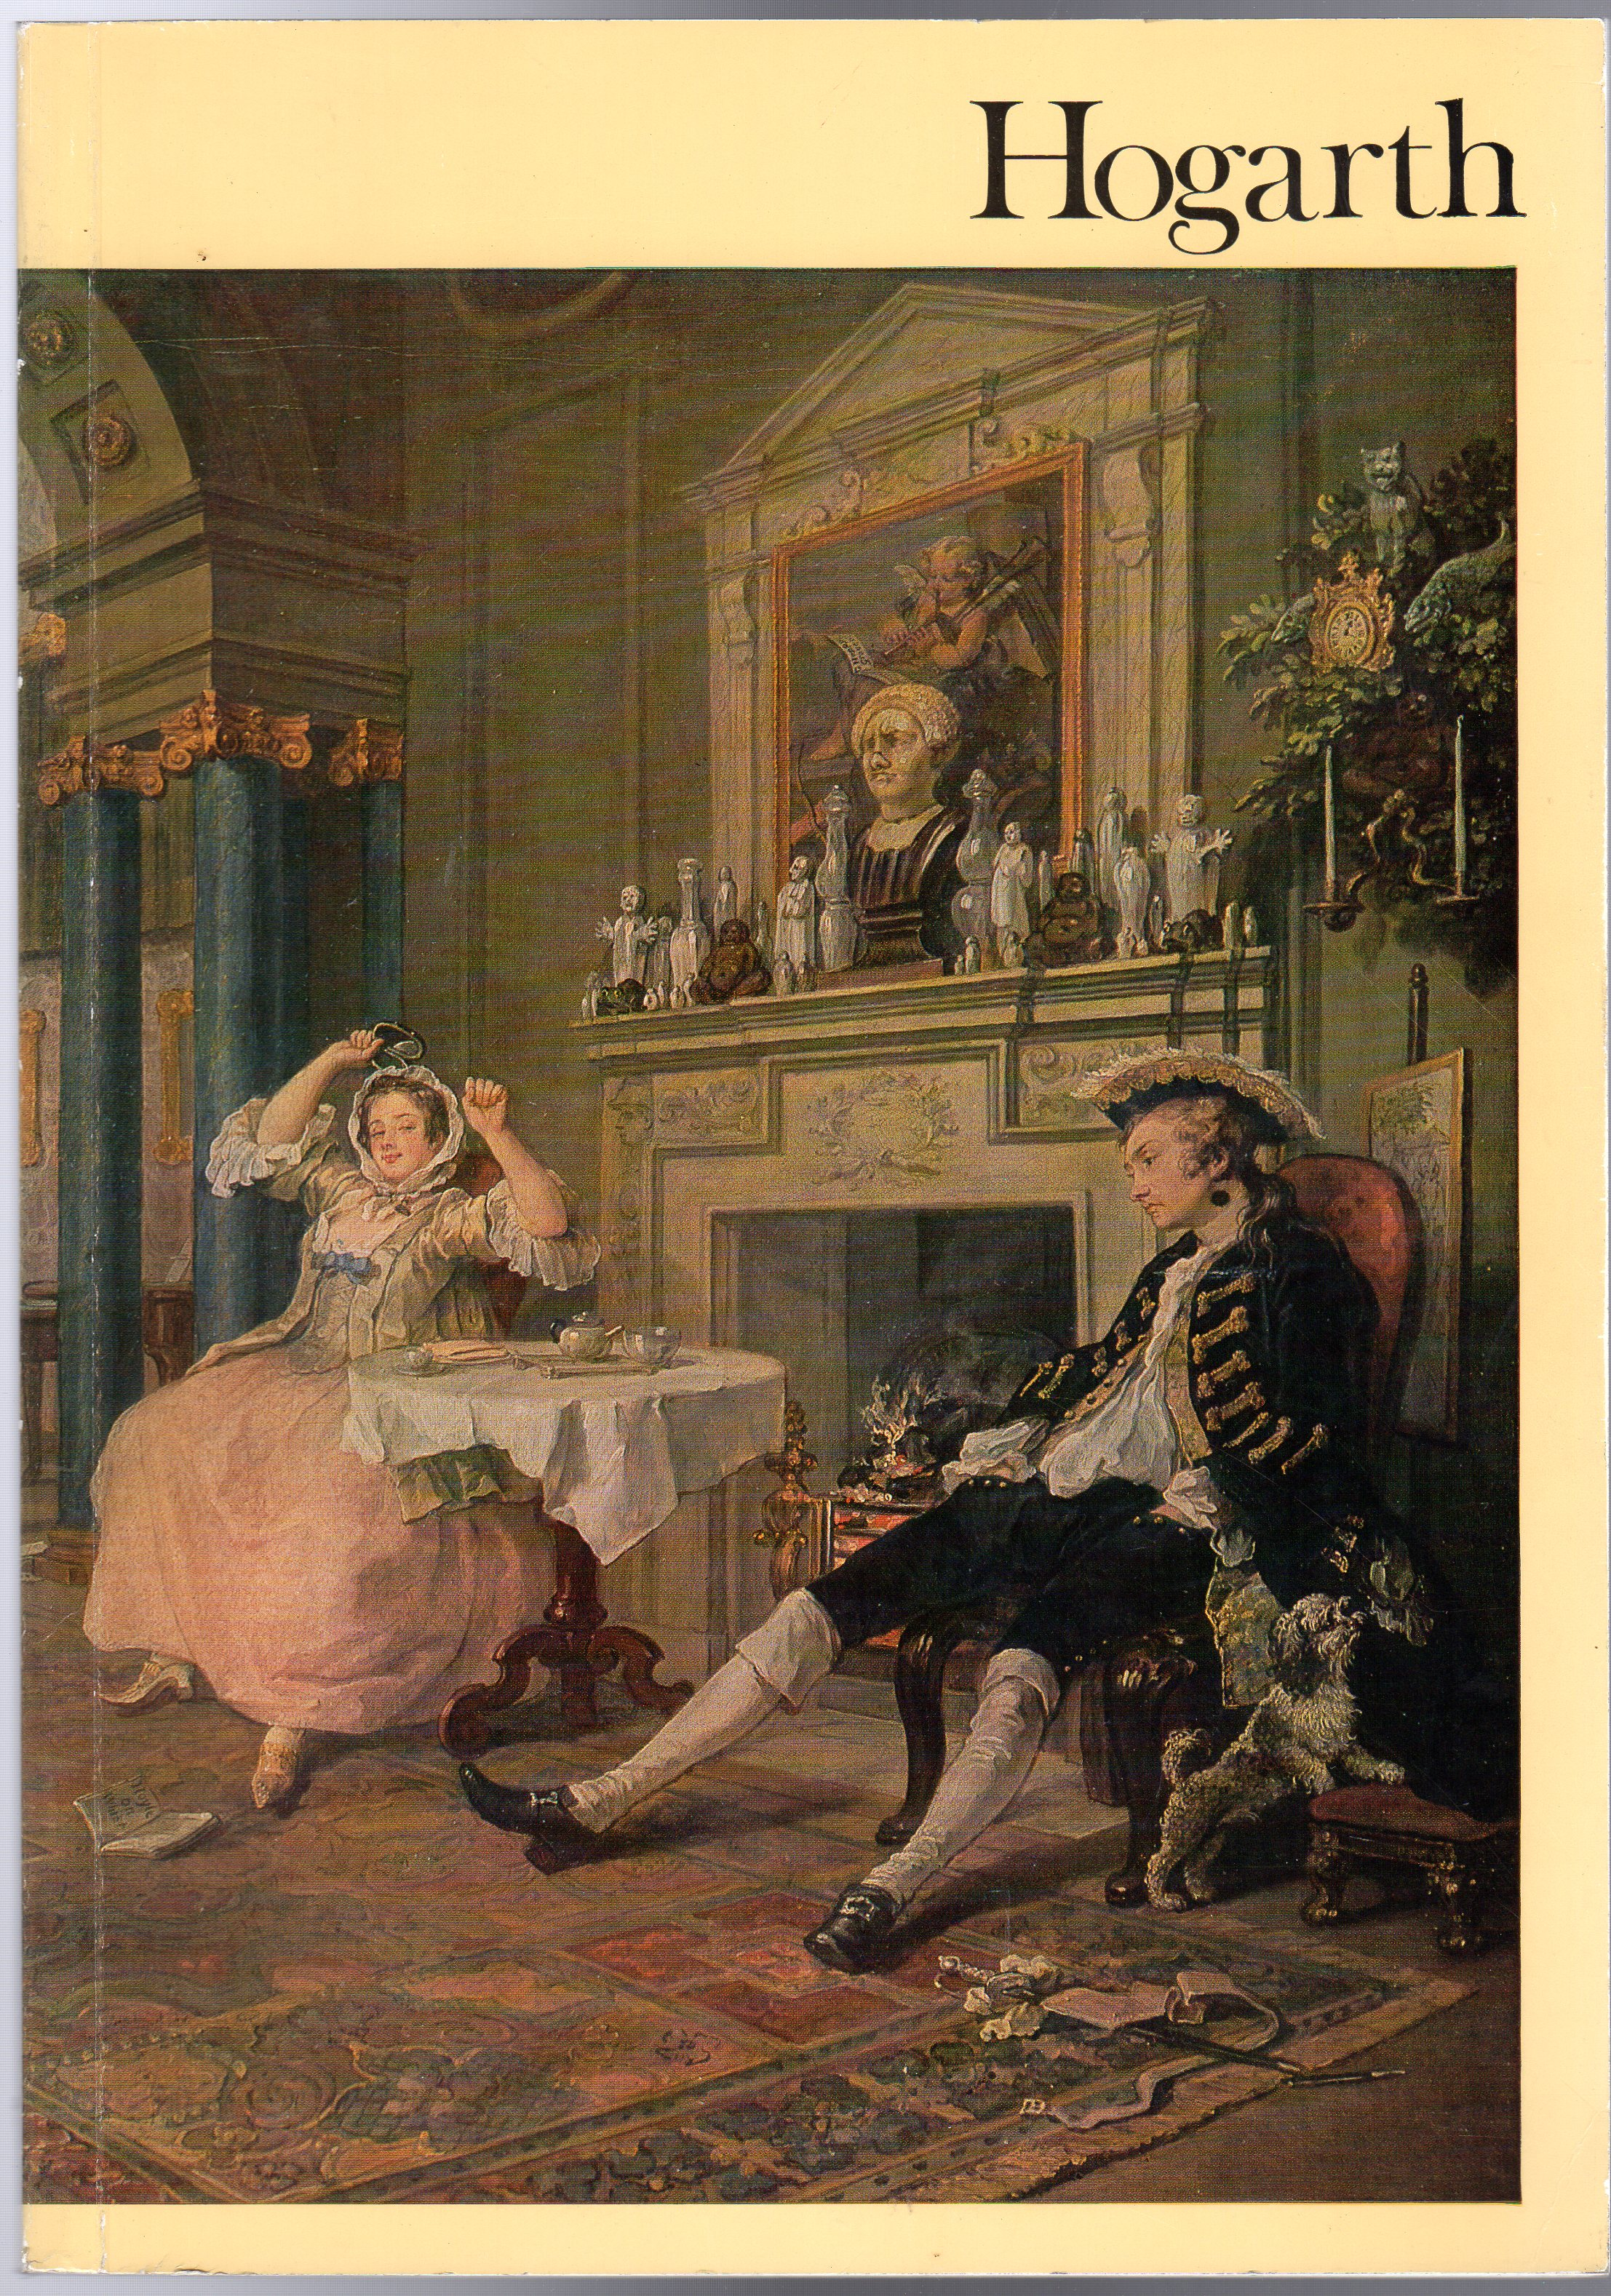 Image for Hogarth - The Tate Gallery 2 December 1971 - 6 February 1972